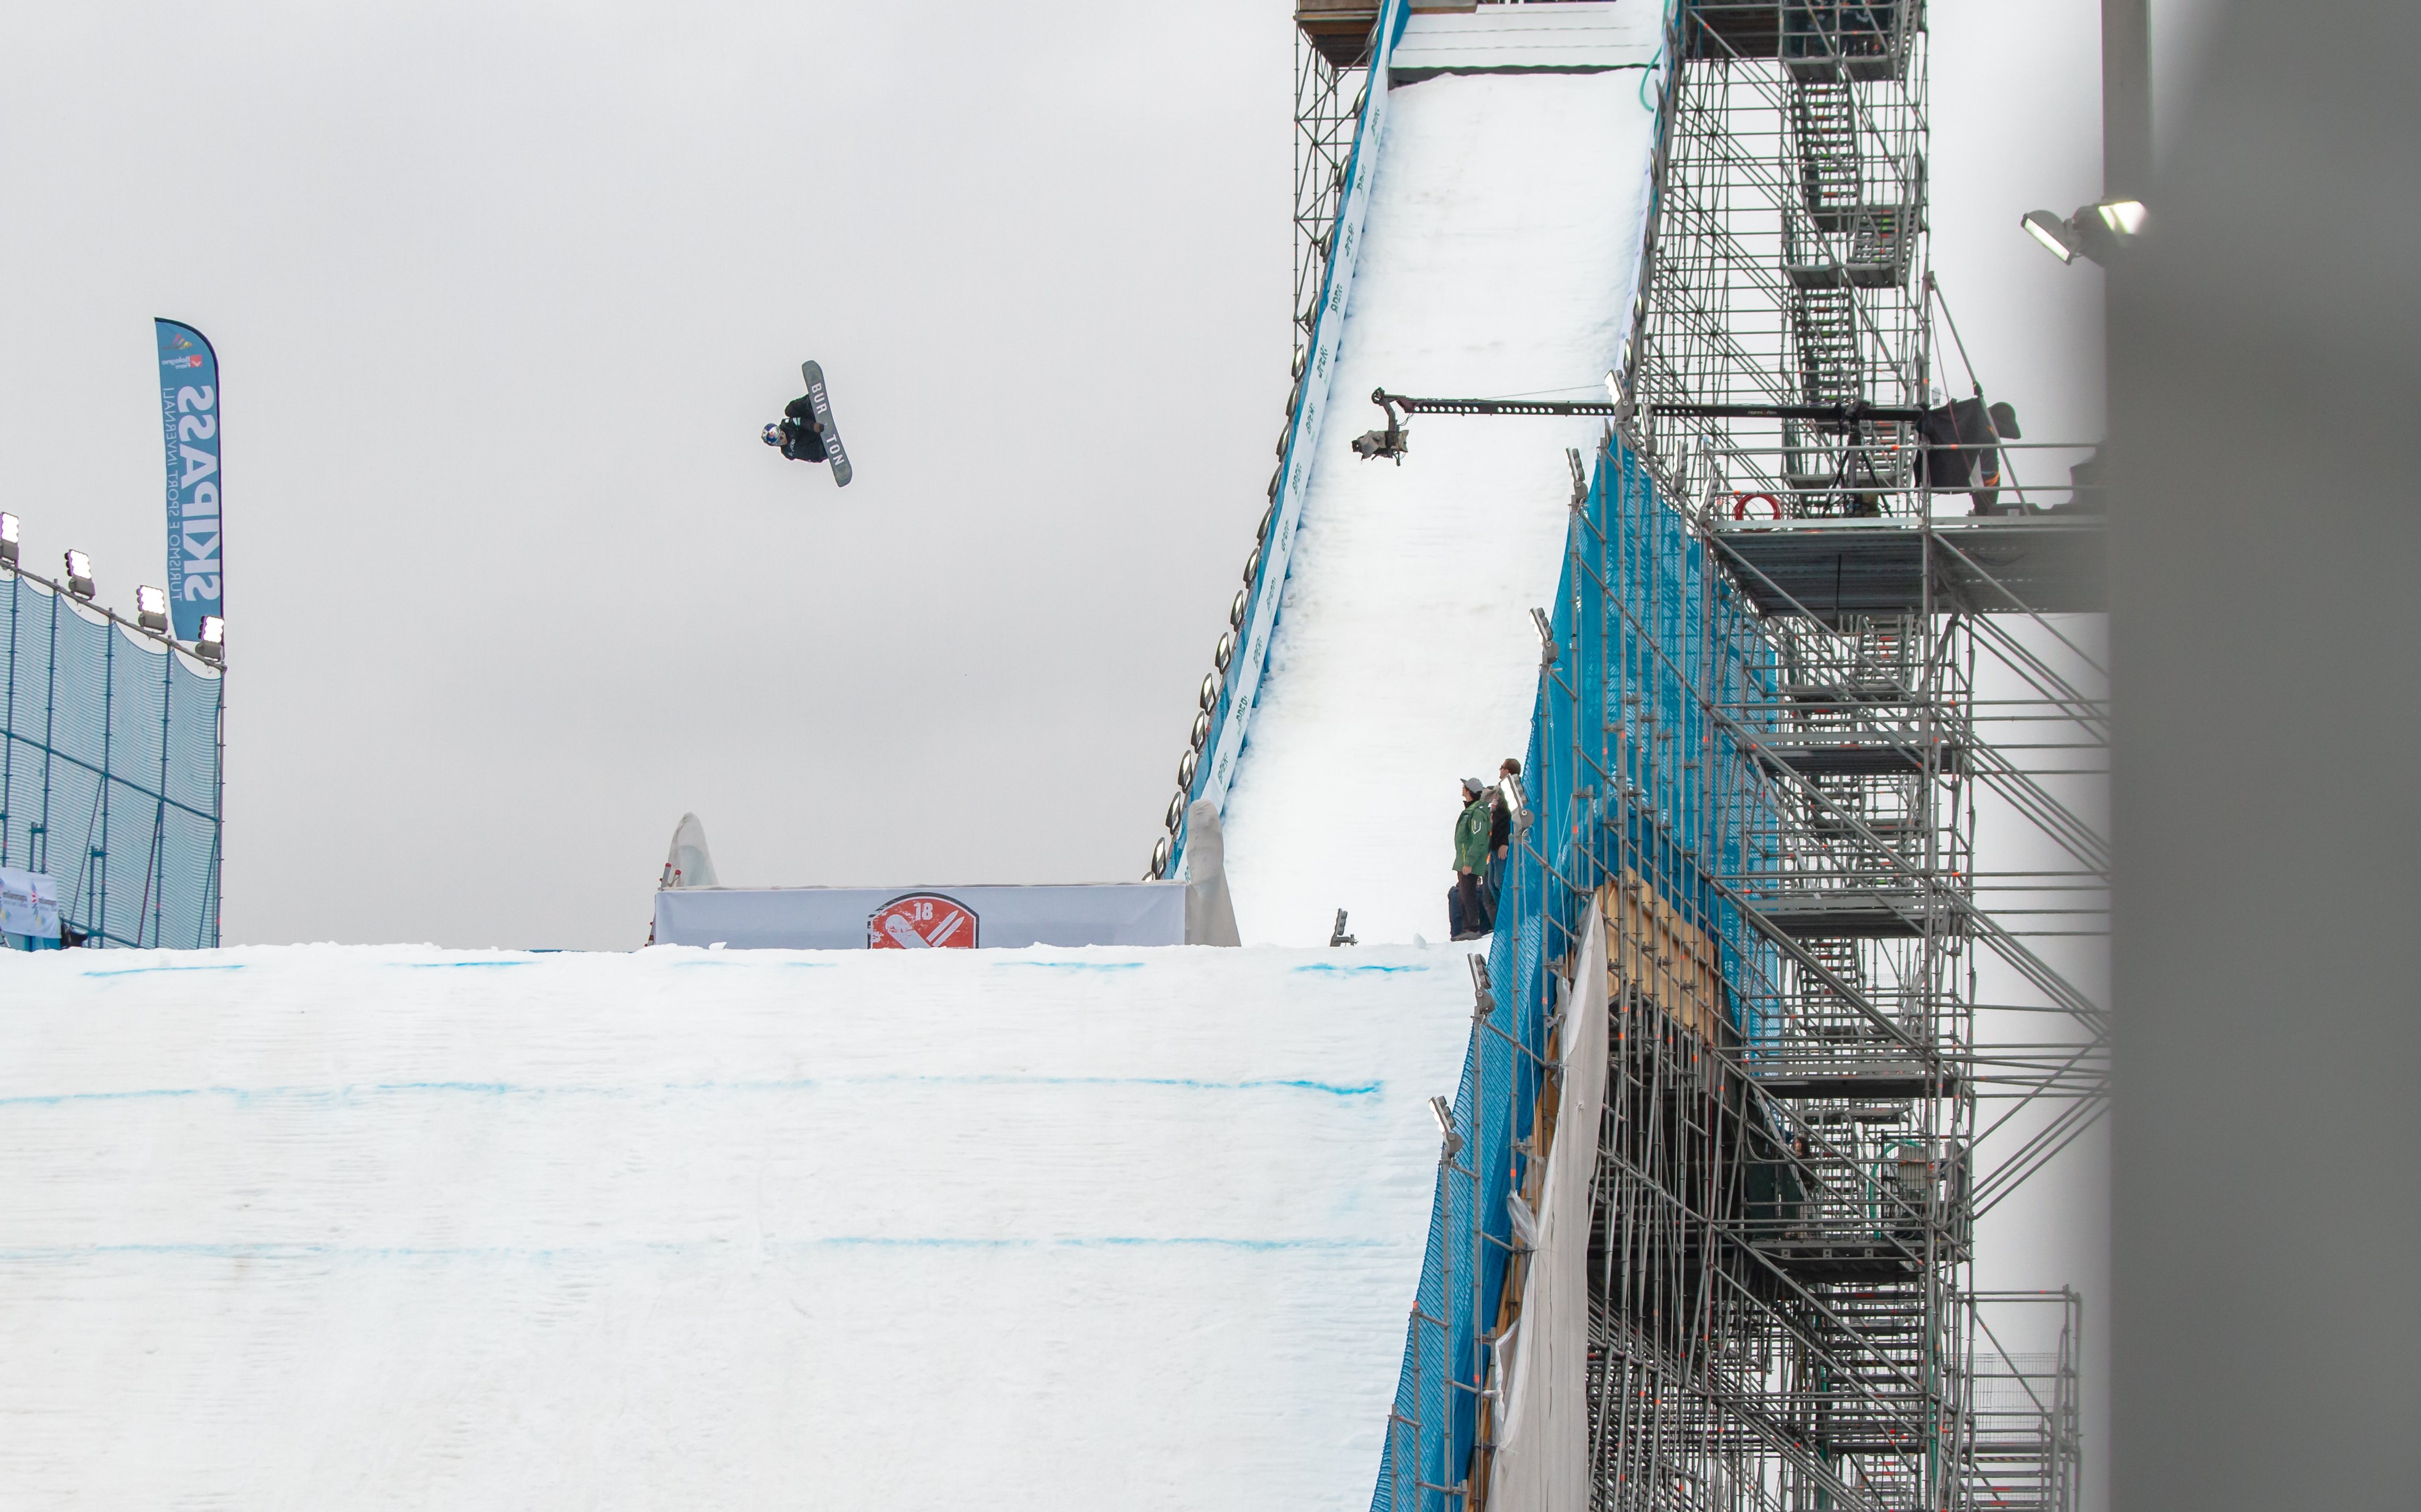 Takeru Otsuka getting himself primed to win the World Cup big air in Modena.